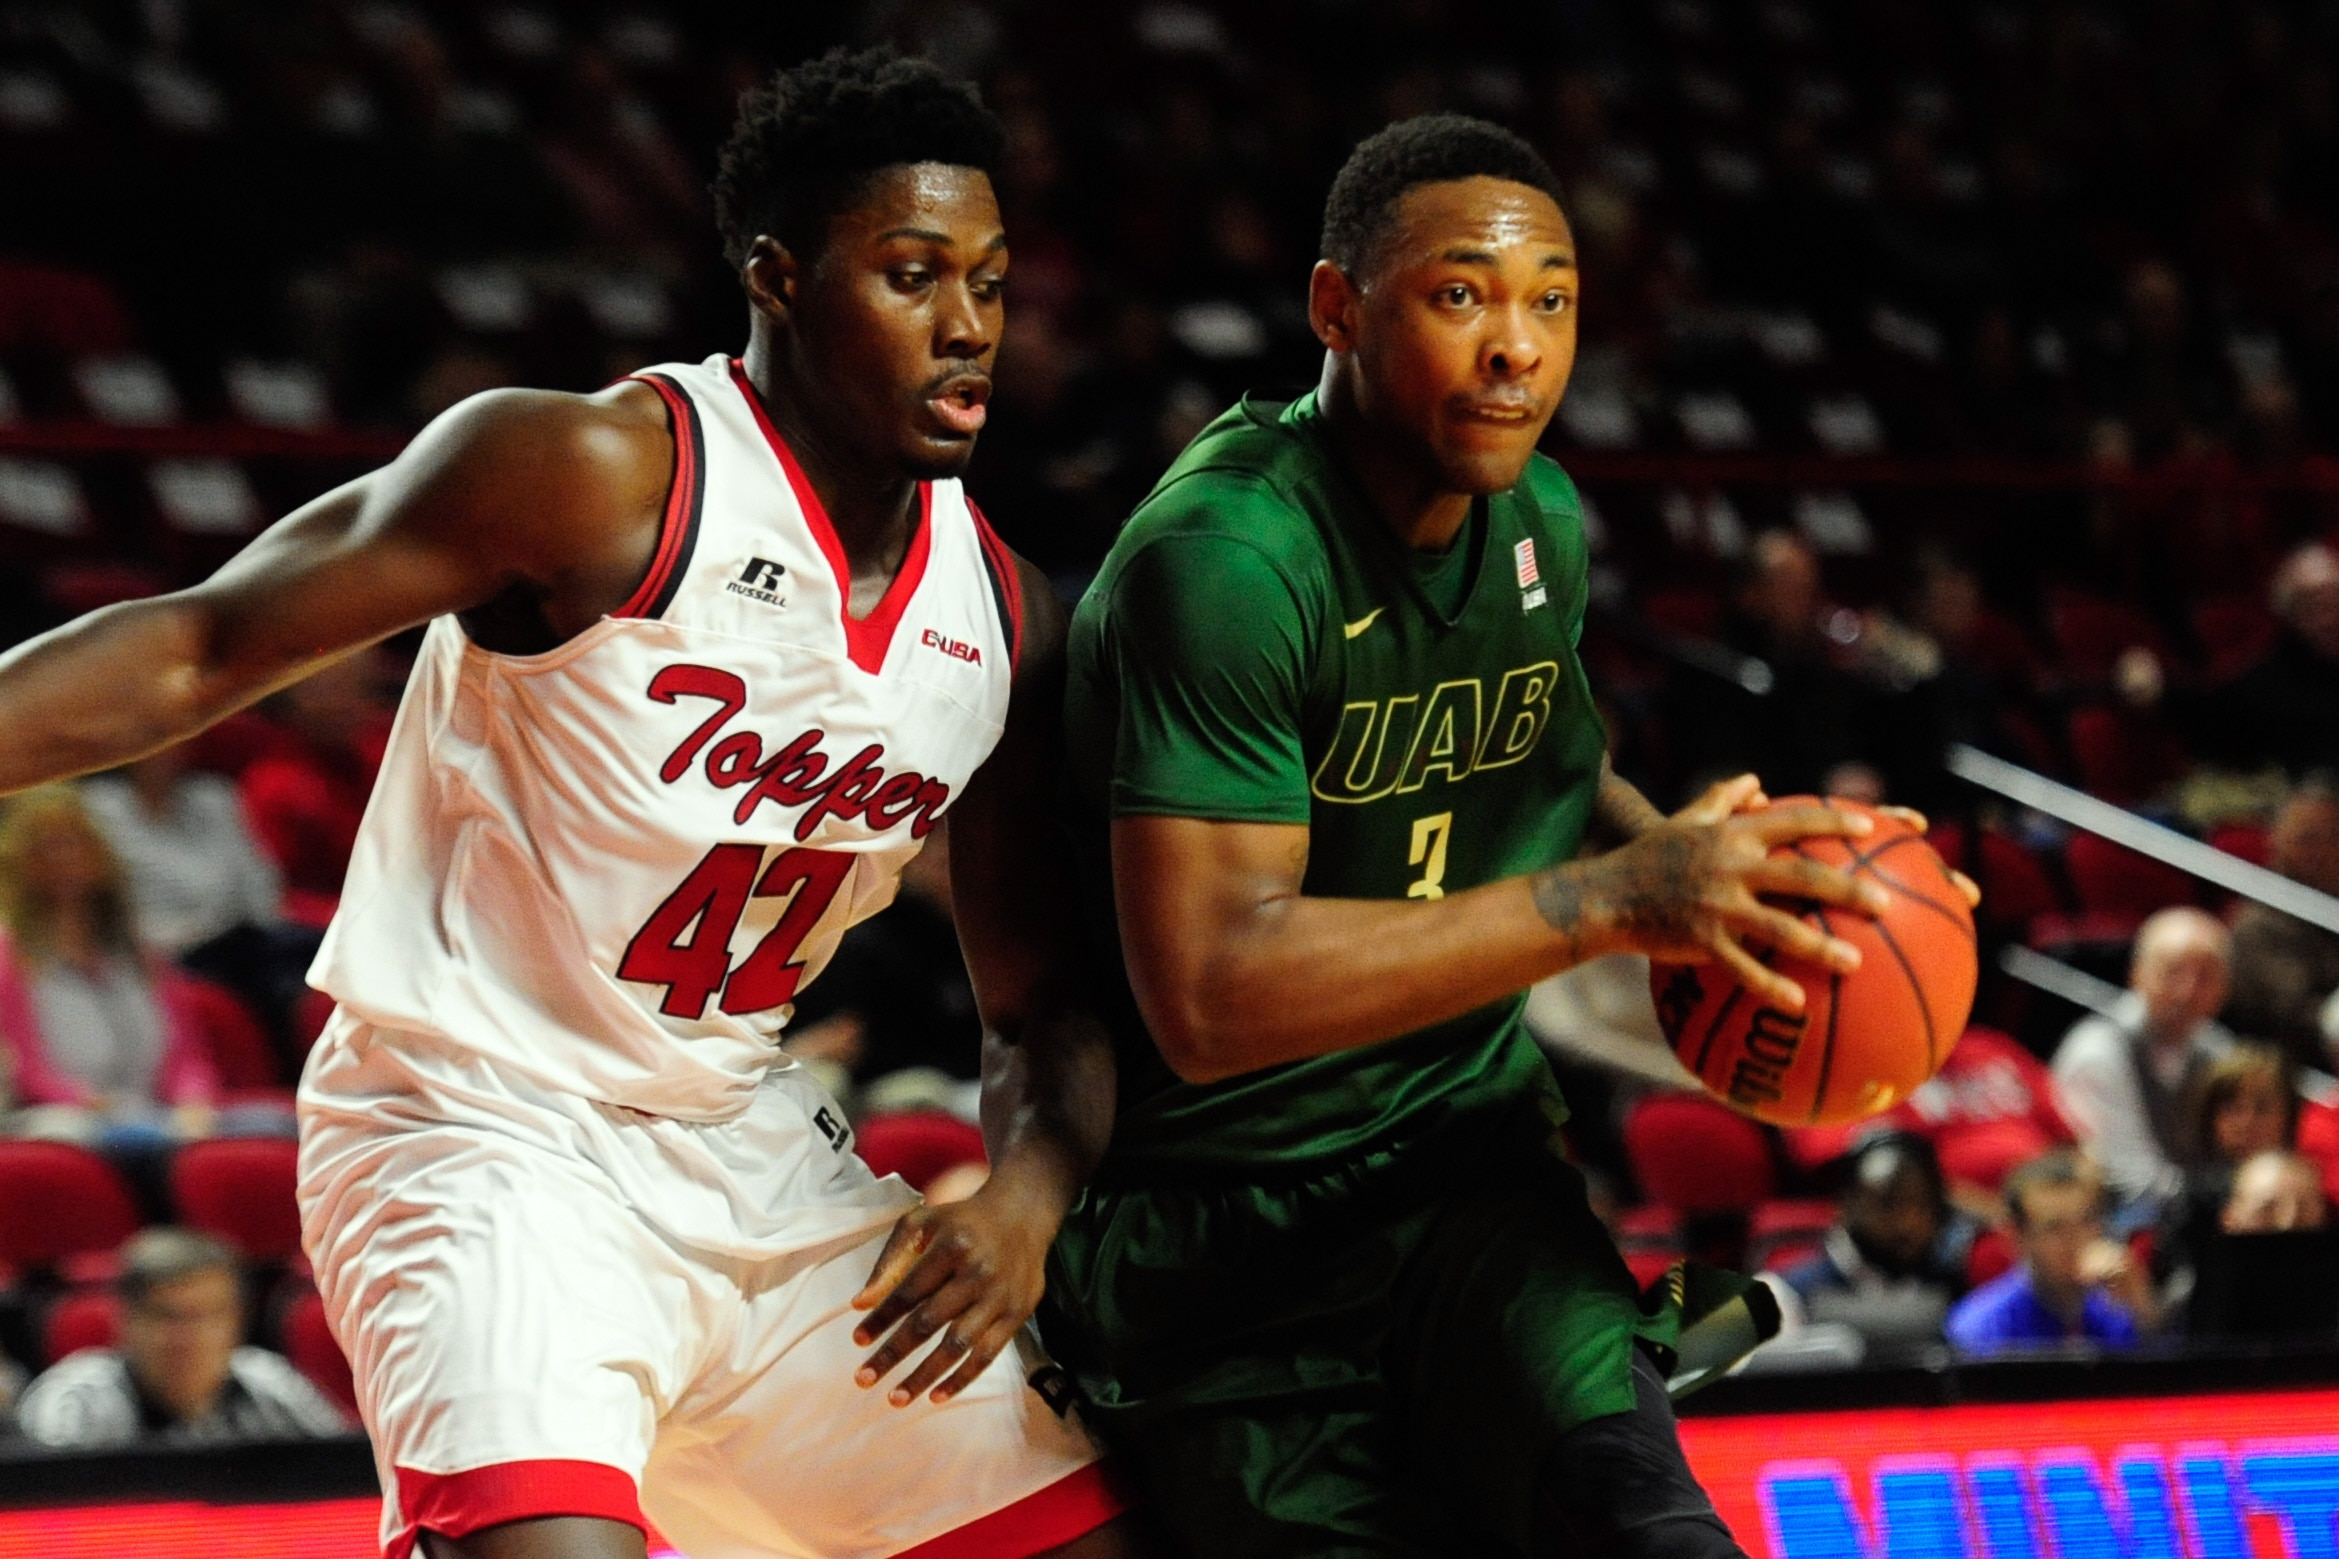 uab once again team to beat in c-usa | ncaa